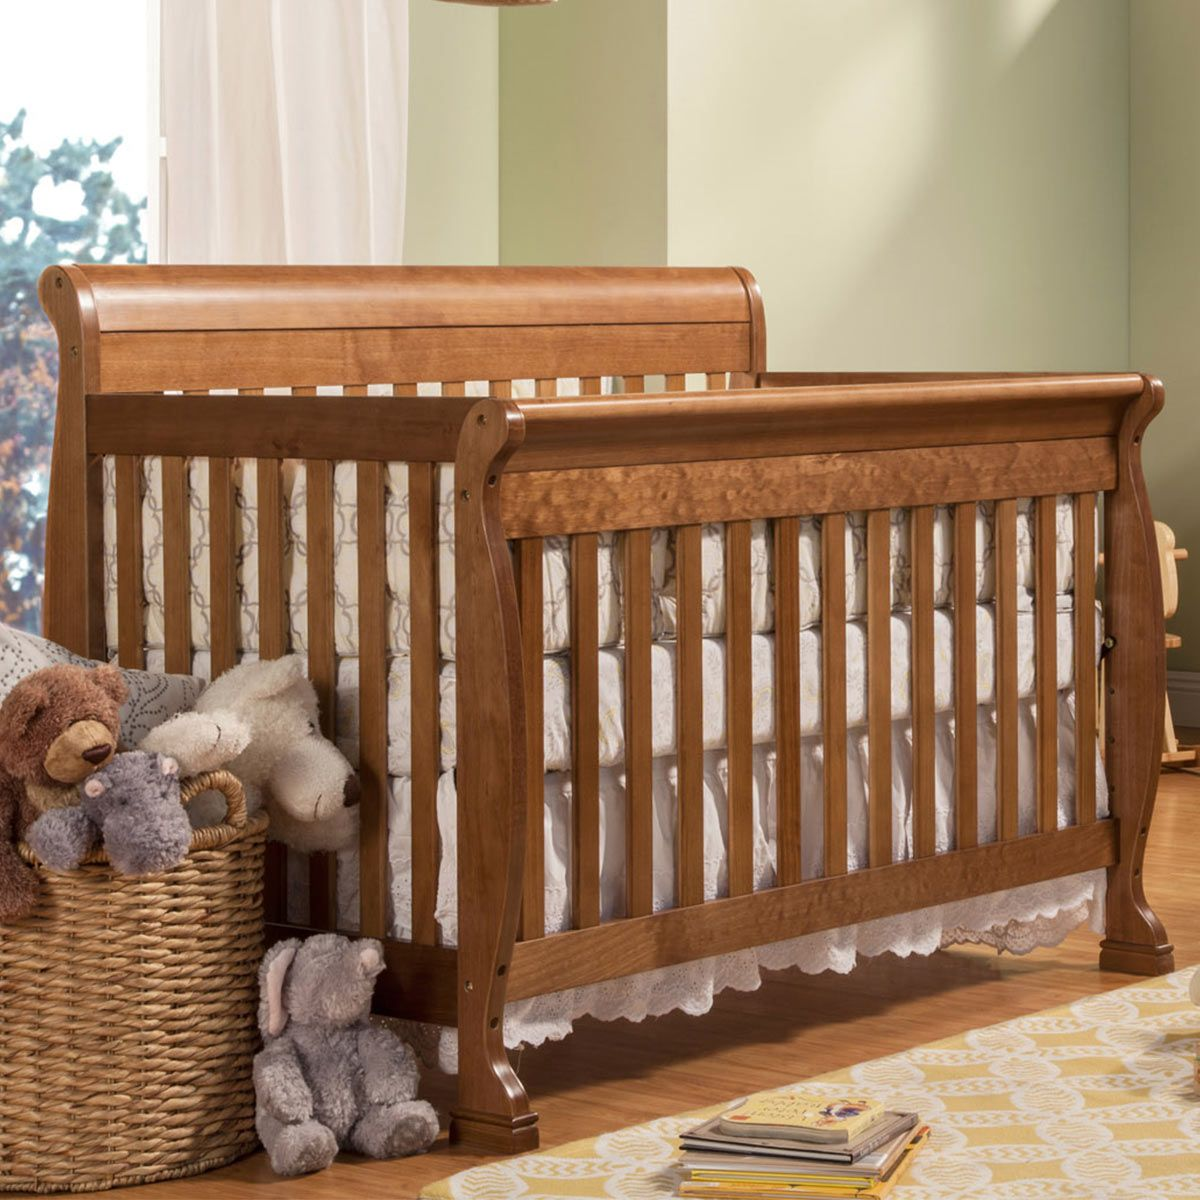 rail baby in cribs resize crib toddler kit kalani bed with convertible davinci piedmont conversion